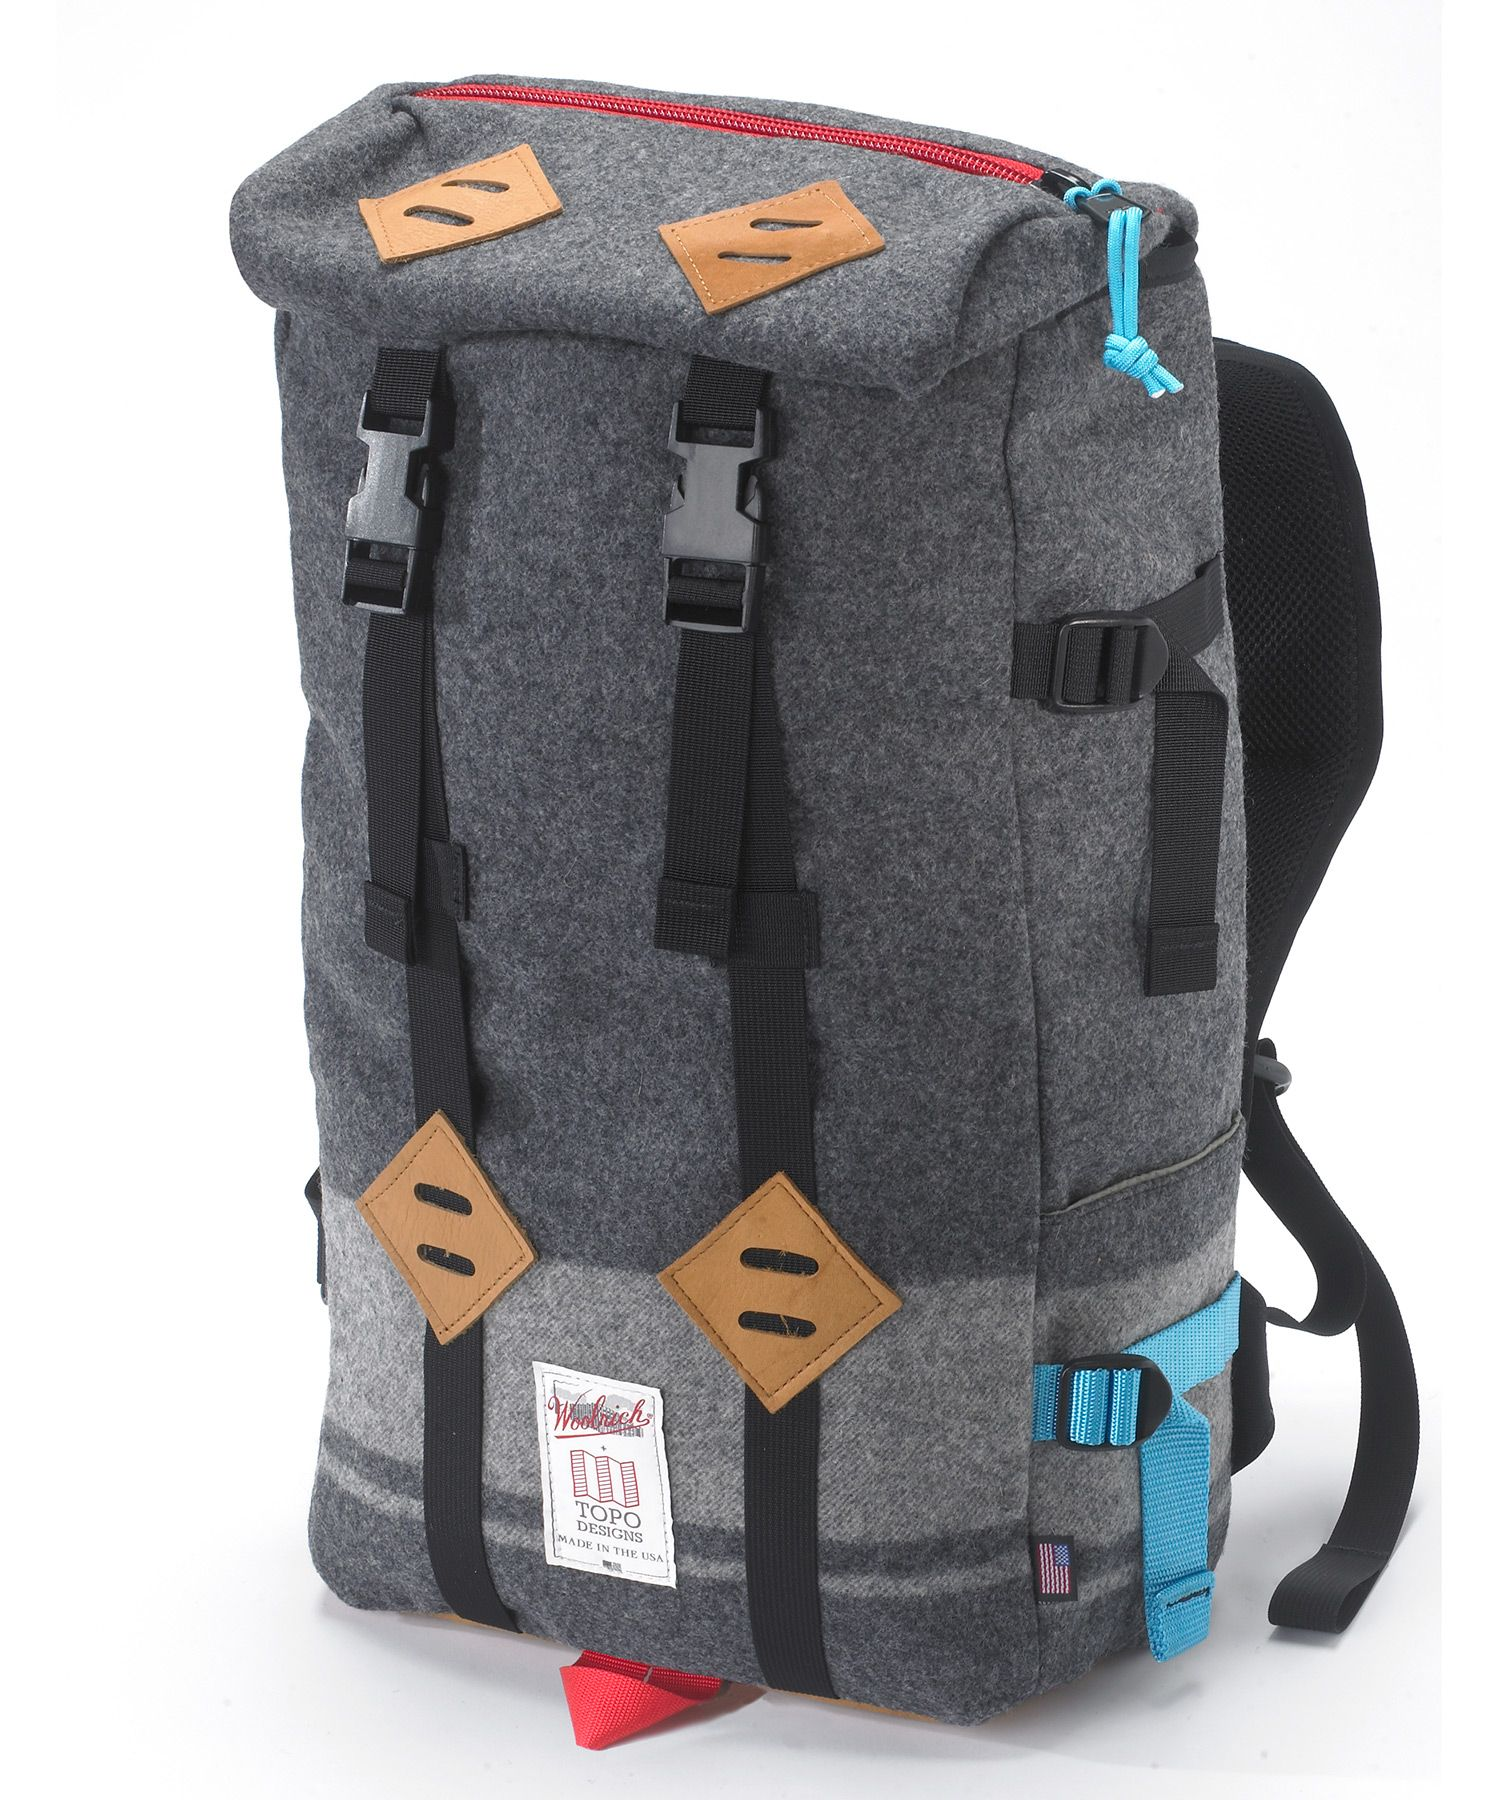 106b5322775c Woolrich Wool Klettersack Backpack Bags